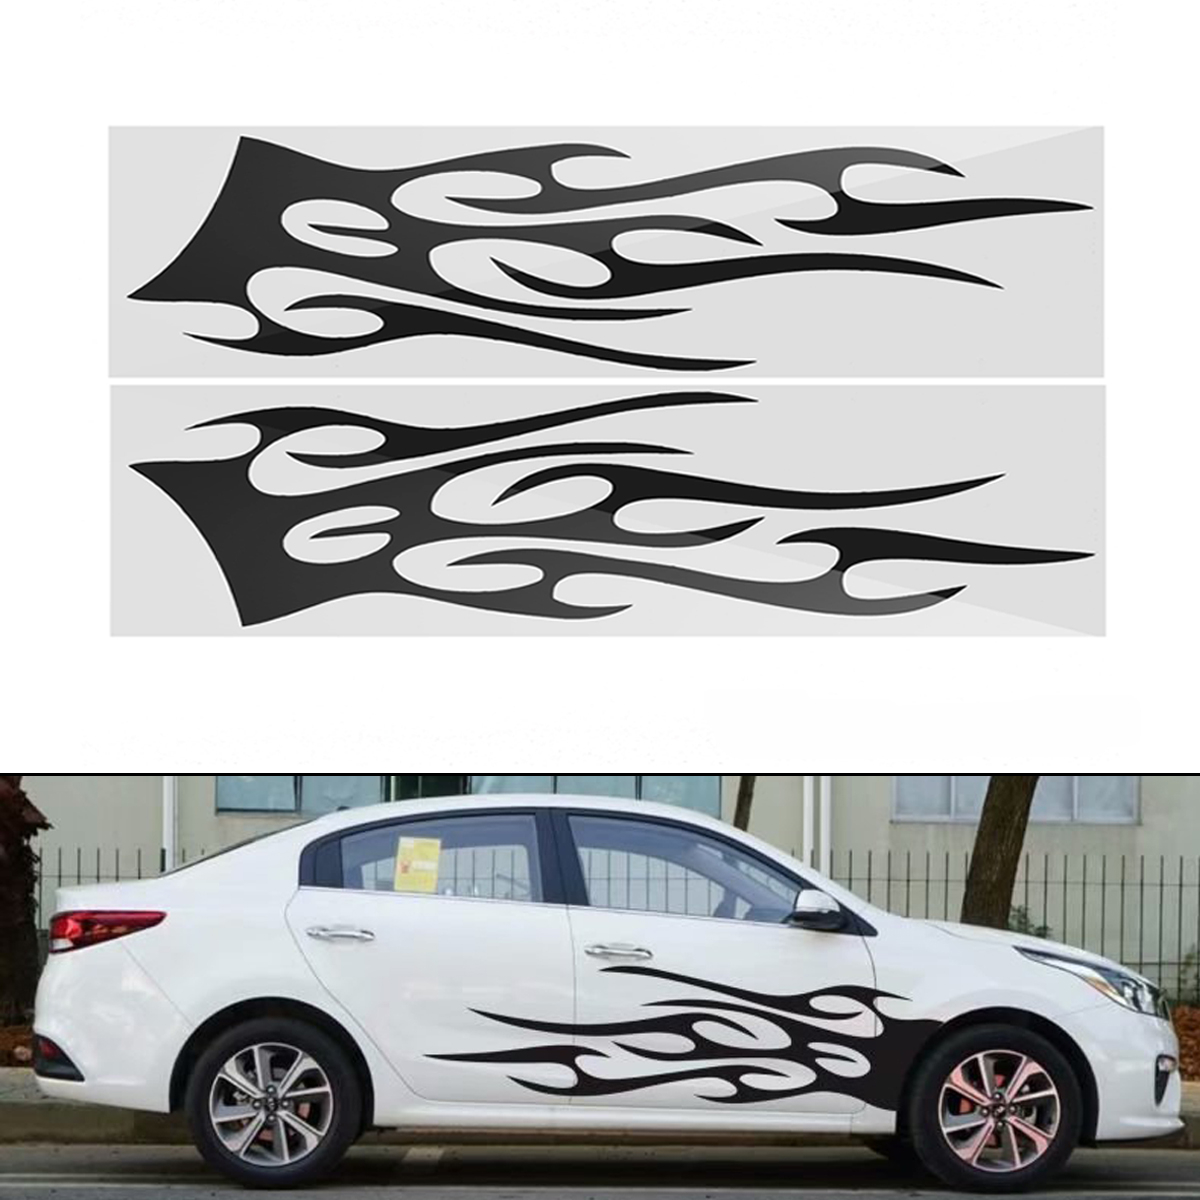 149cm42cm sports stripe pattern style car stickers vinyl decal for race suv side body